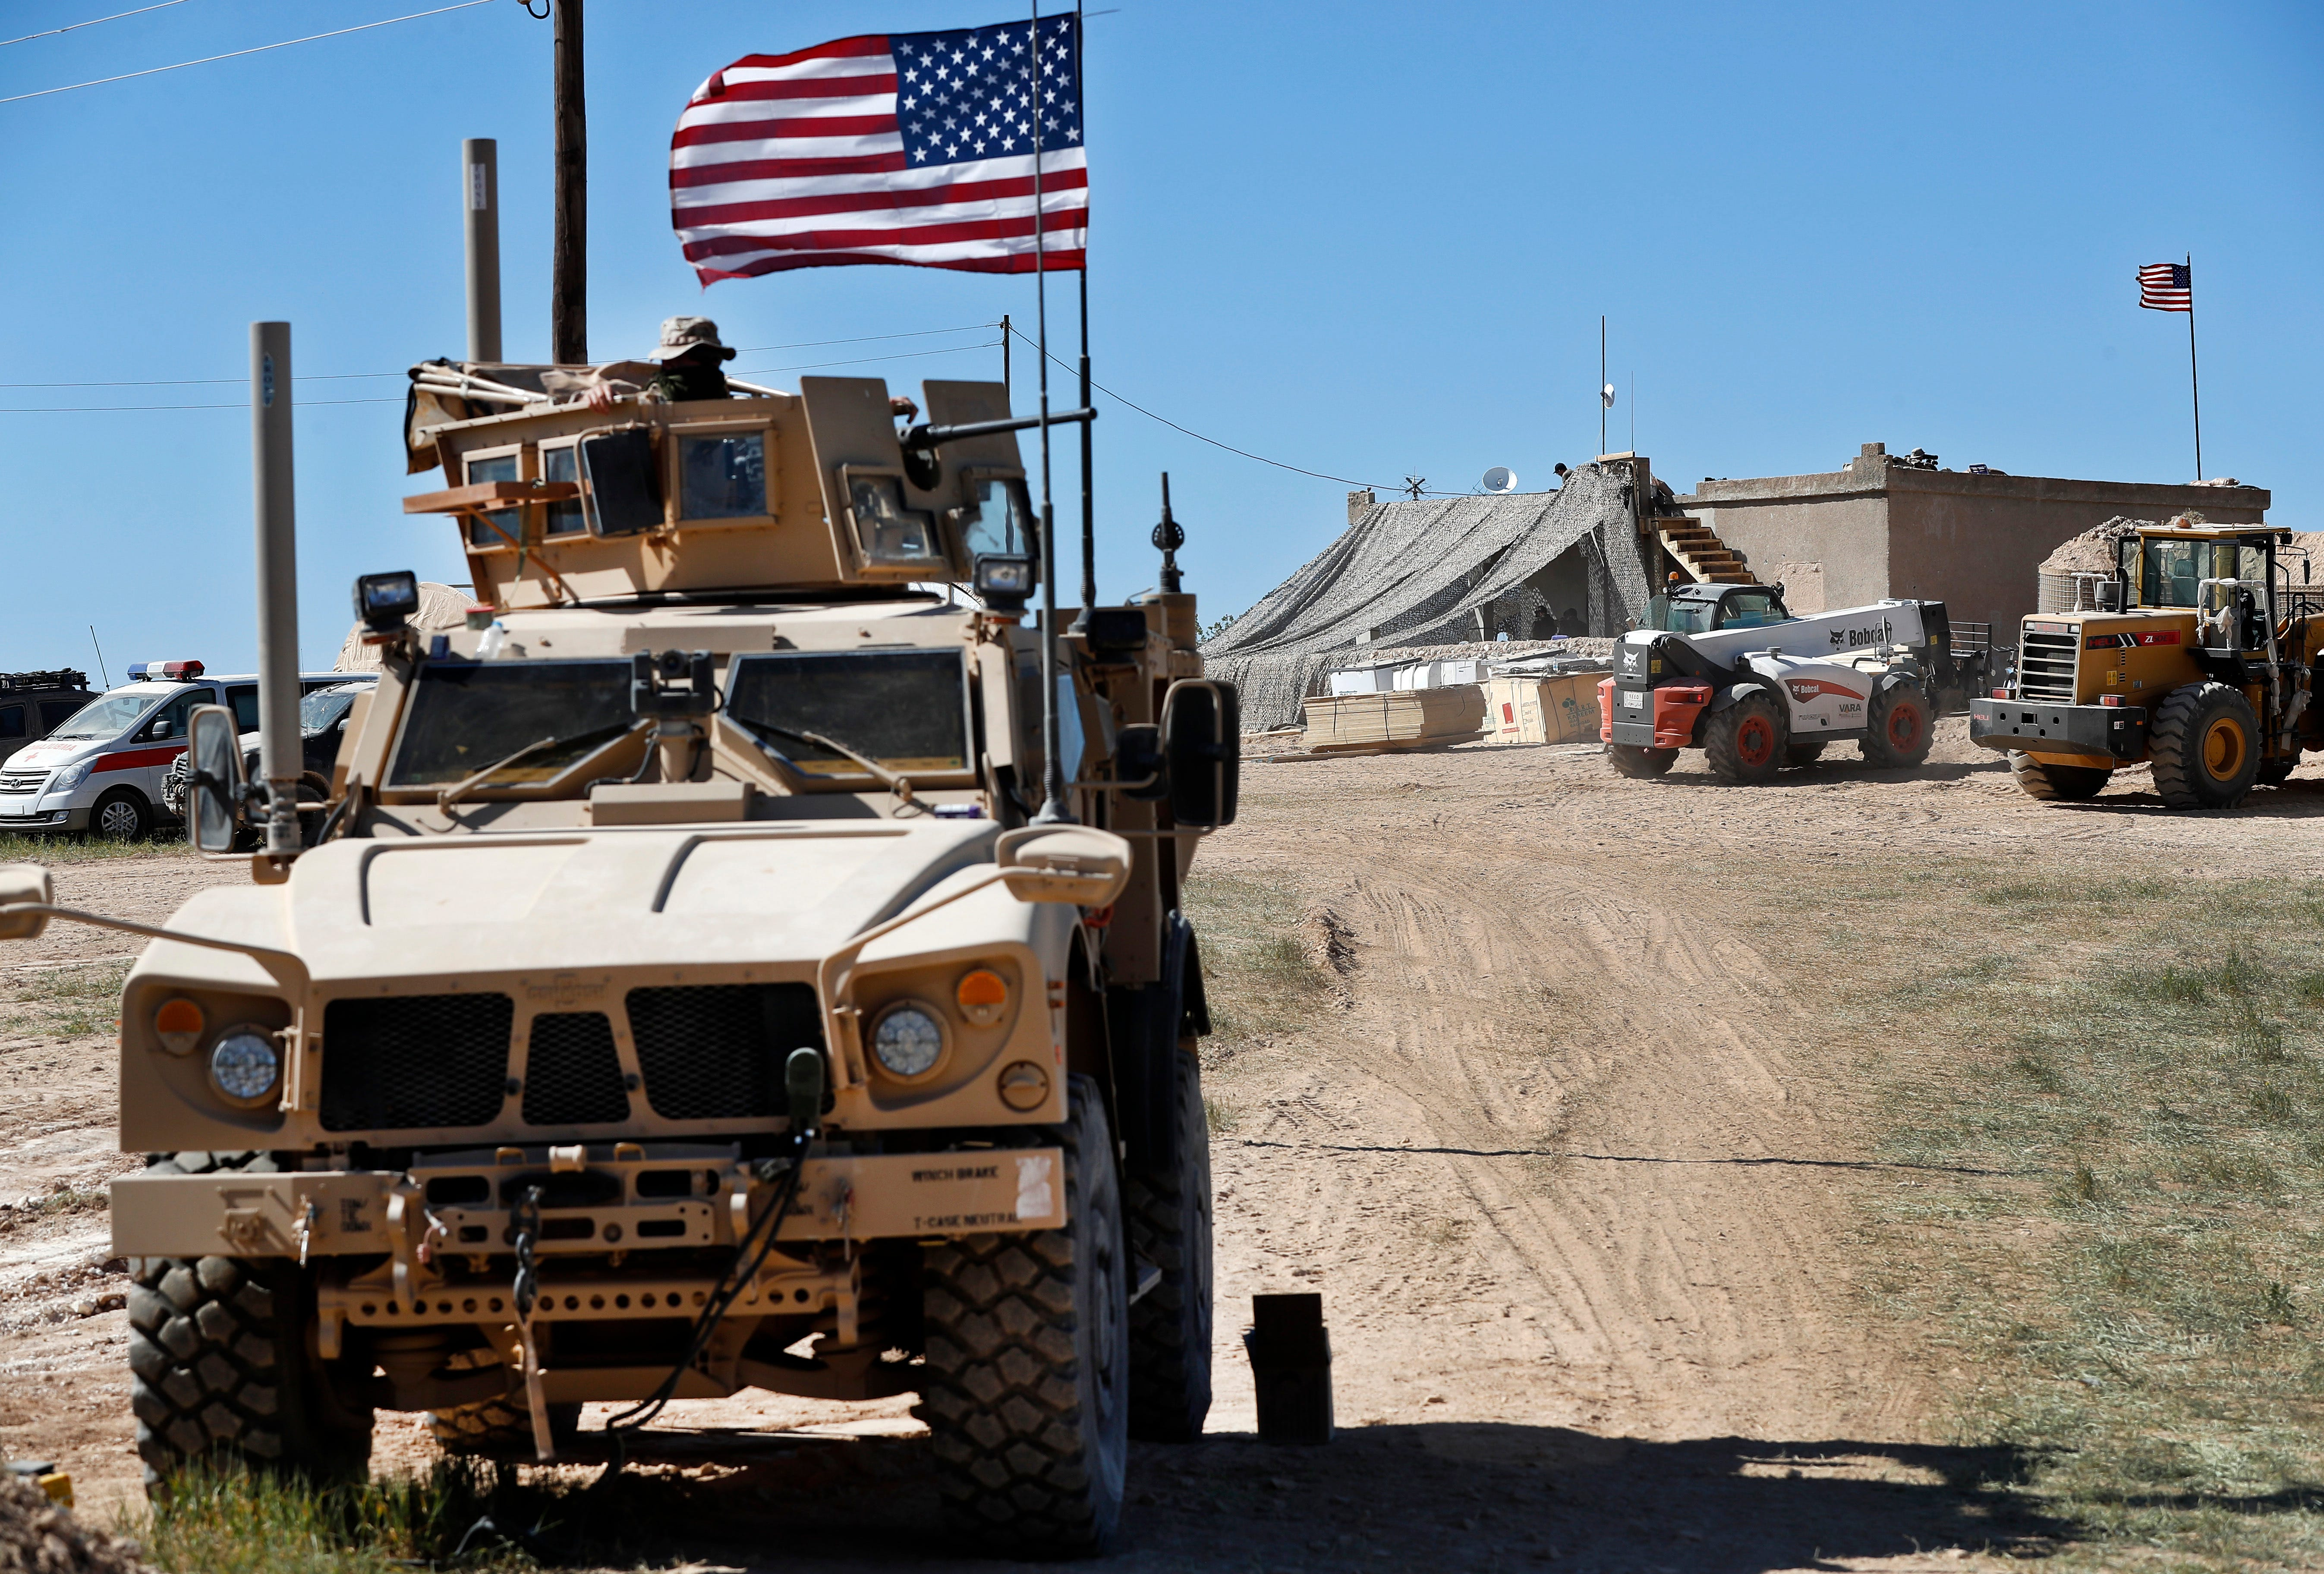 U.S. starts withdrawing from Syria amid policy confusion